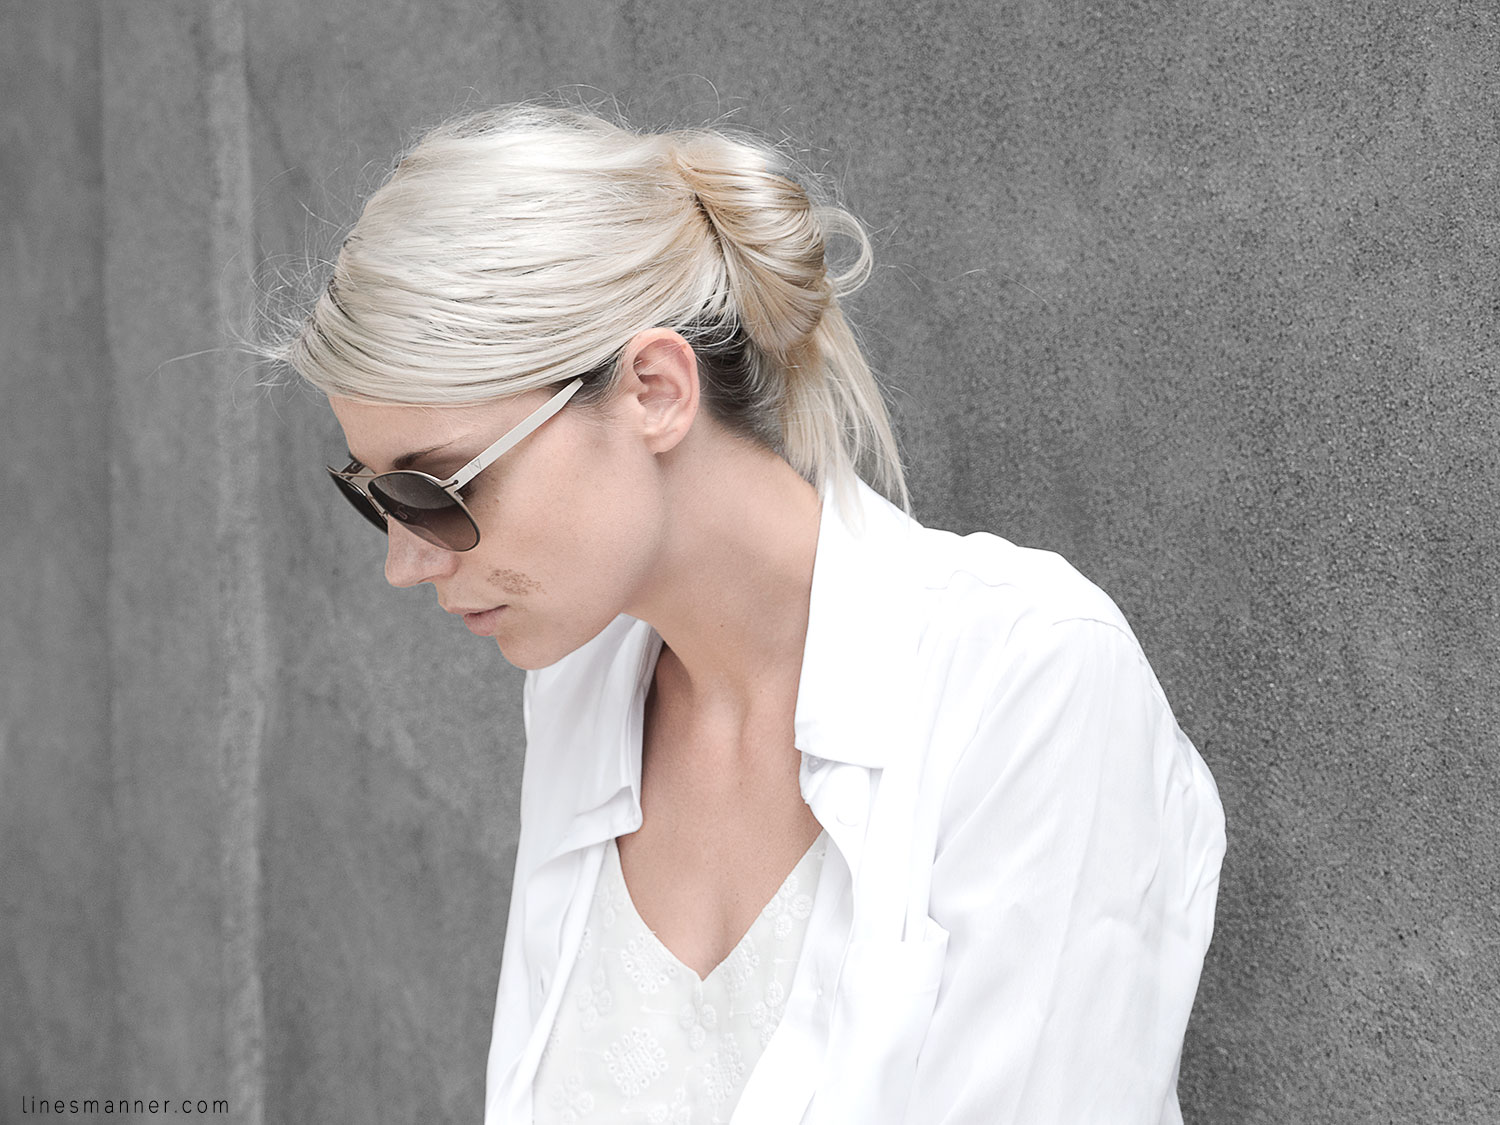 Lines-Manner-Whites-Summer-Essentials-Details-Fresh-Handmade-Aviators-Black_details-Degree-Seven-Simplicity-6